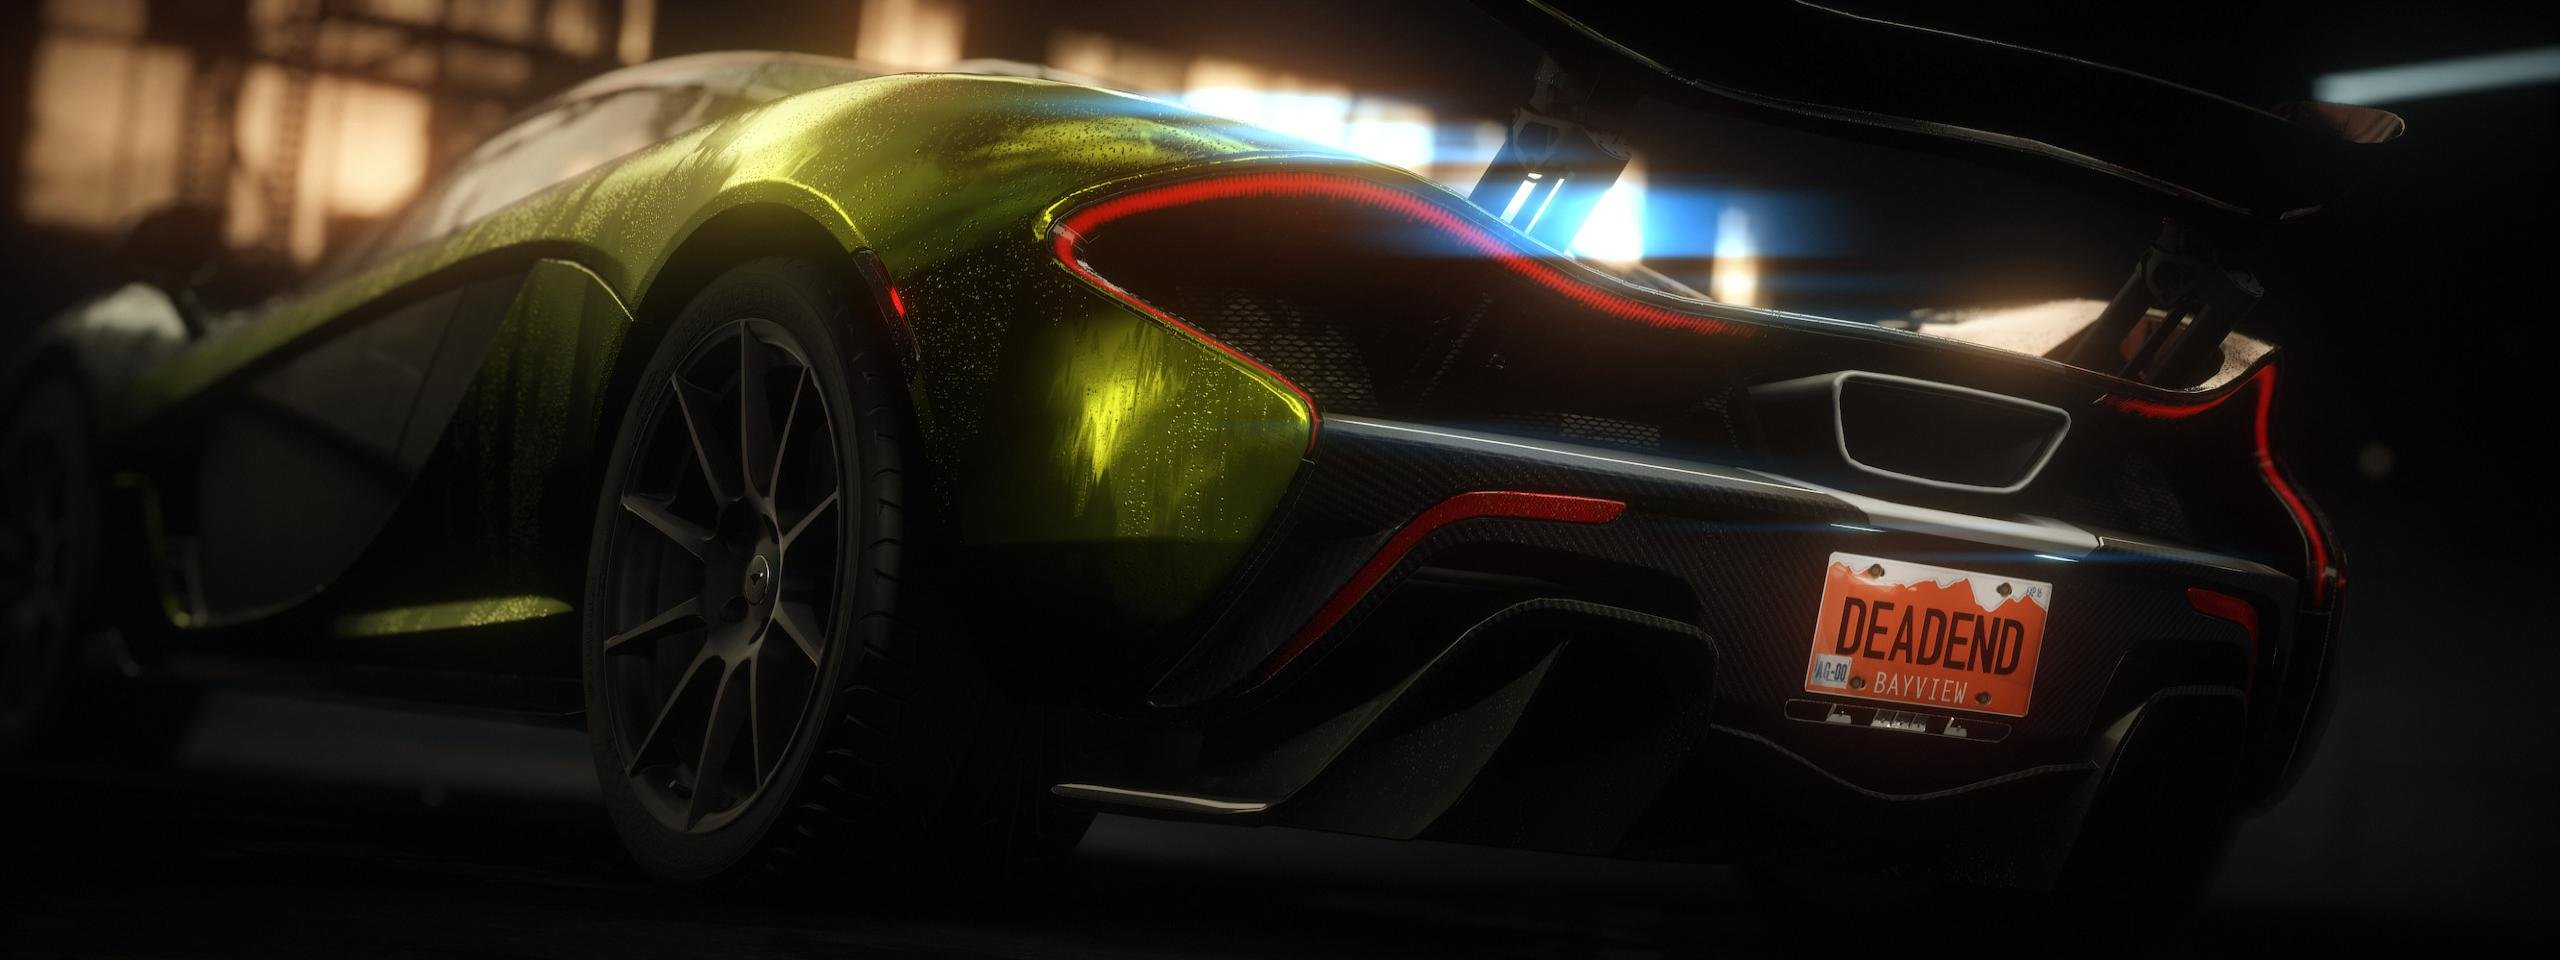 High resolution Need For Speed: Rivals dual screen 2560x960 wallpaper ID:259461 for desktop